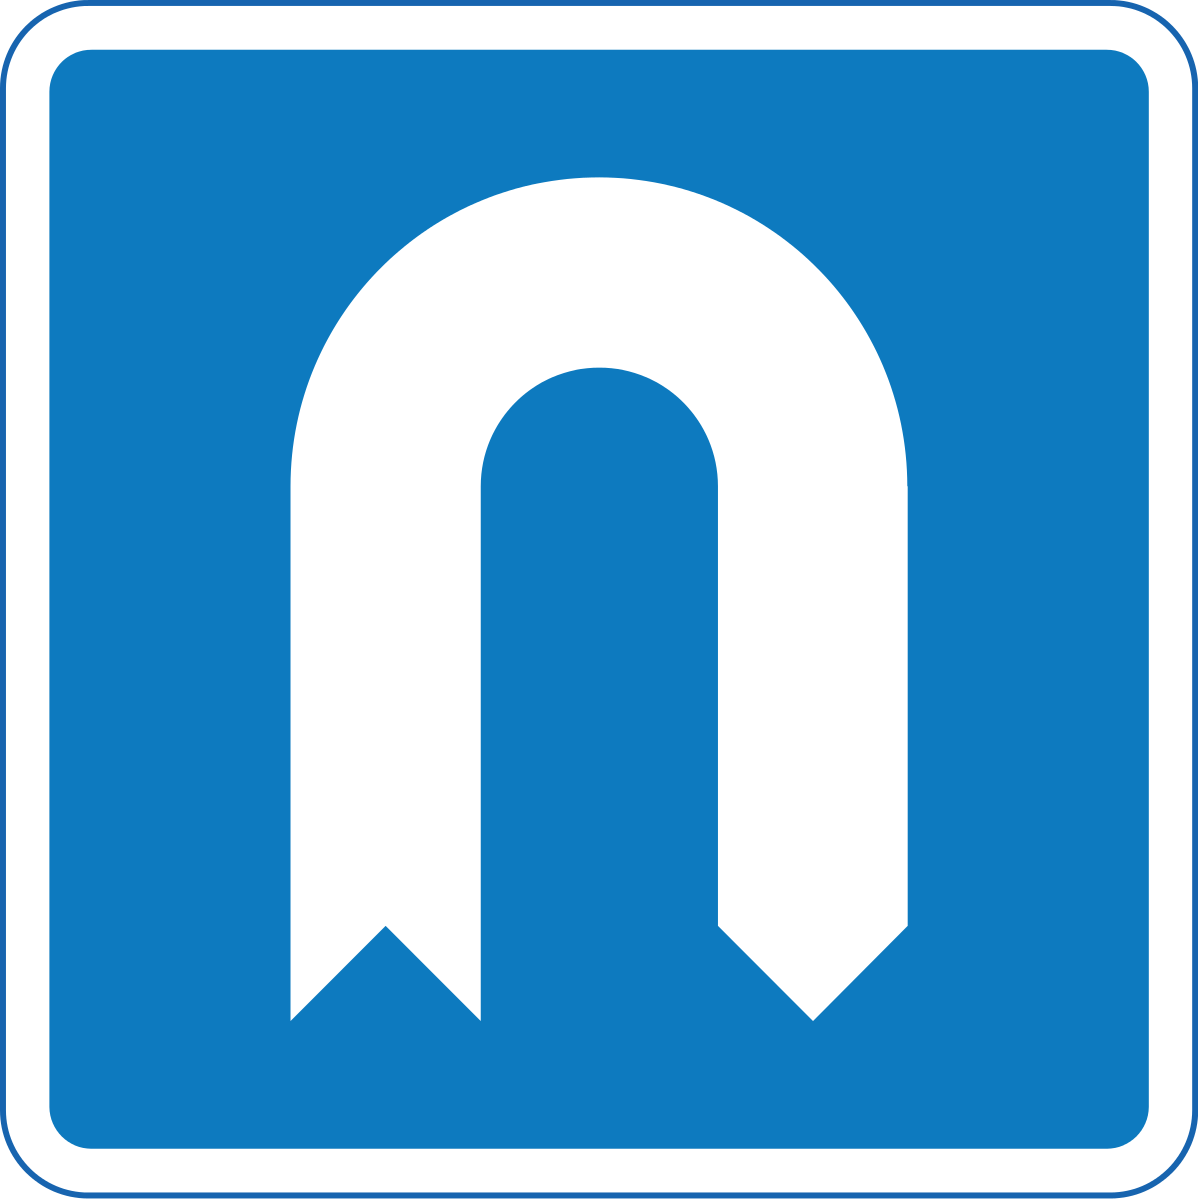 Indication of a U-turn lane, on the lane closest to the road divider or carriageway